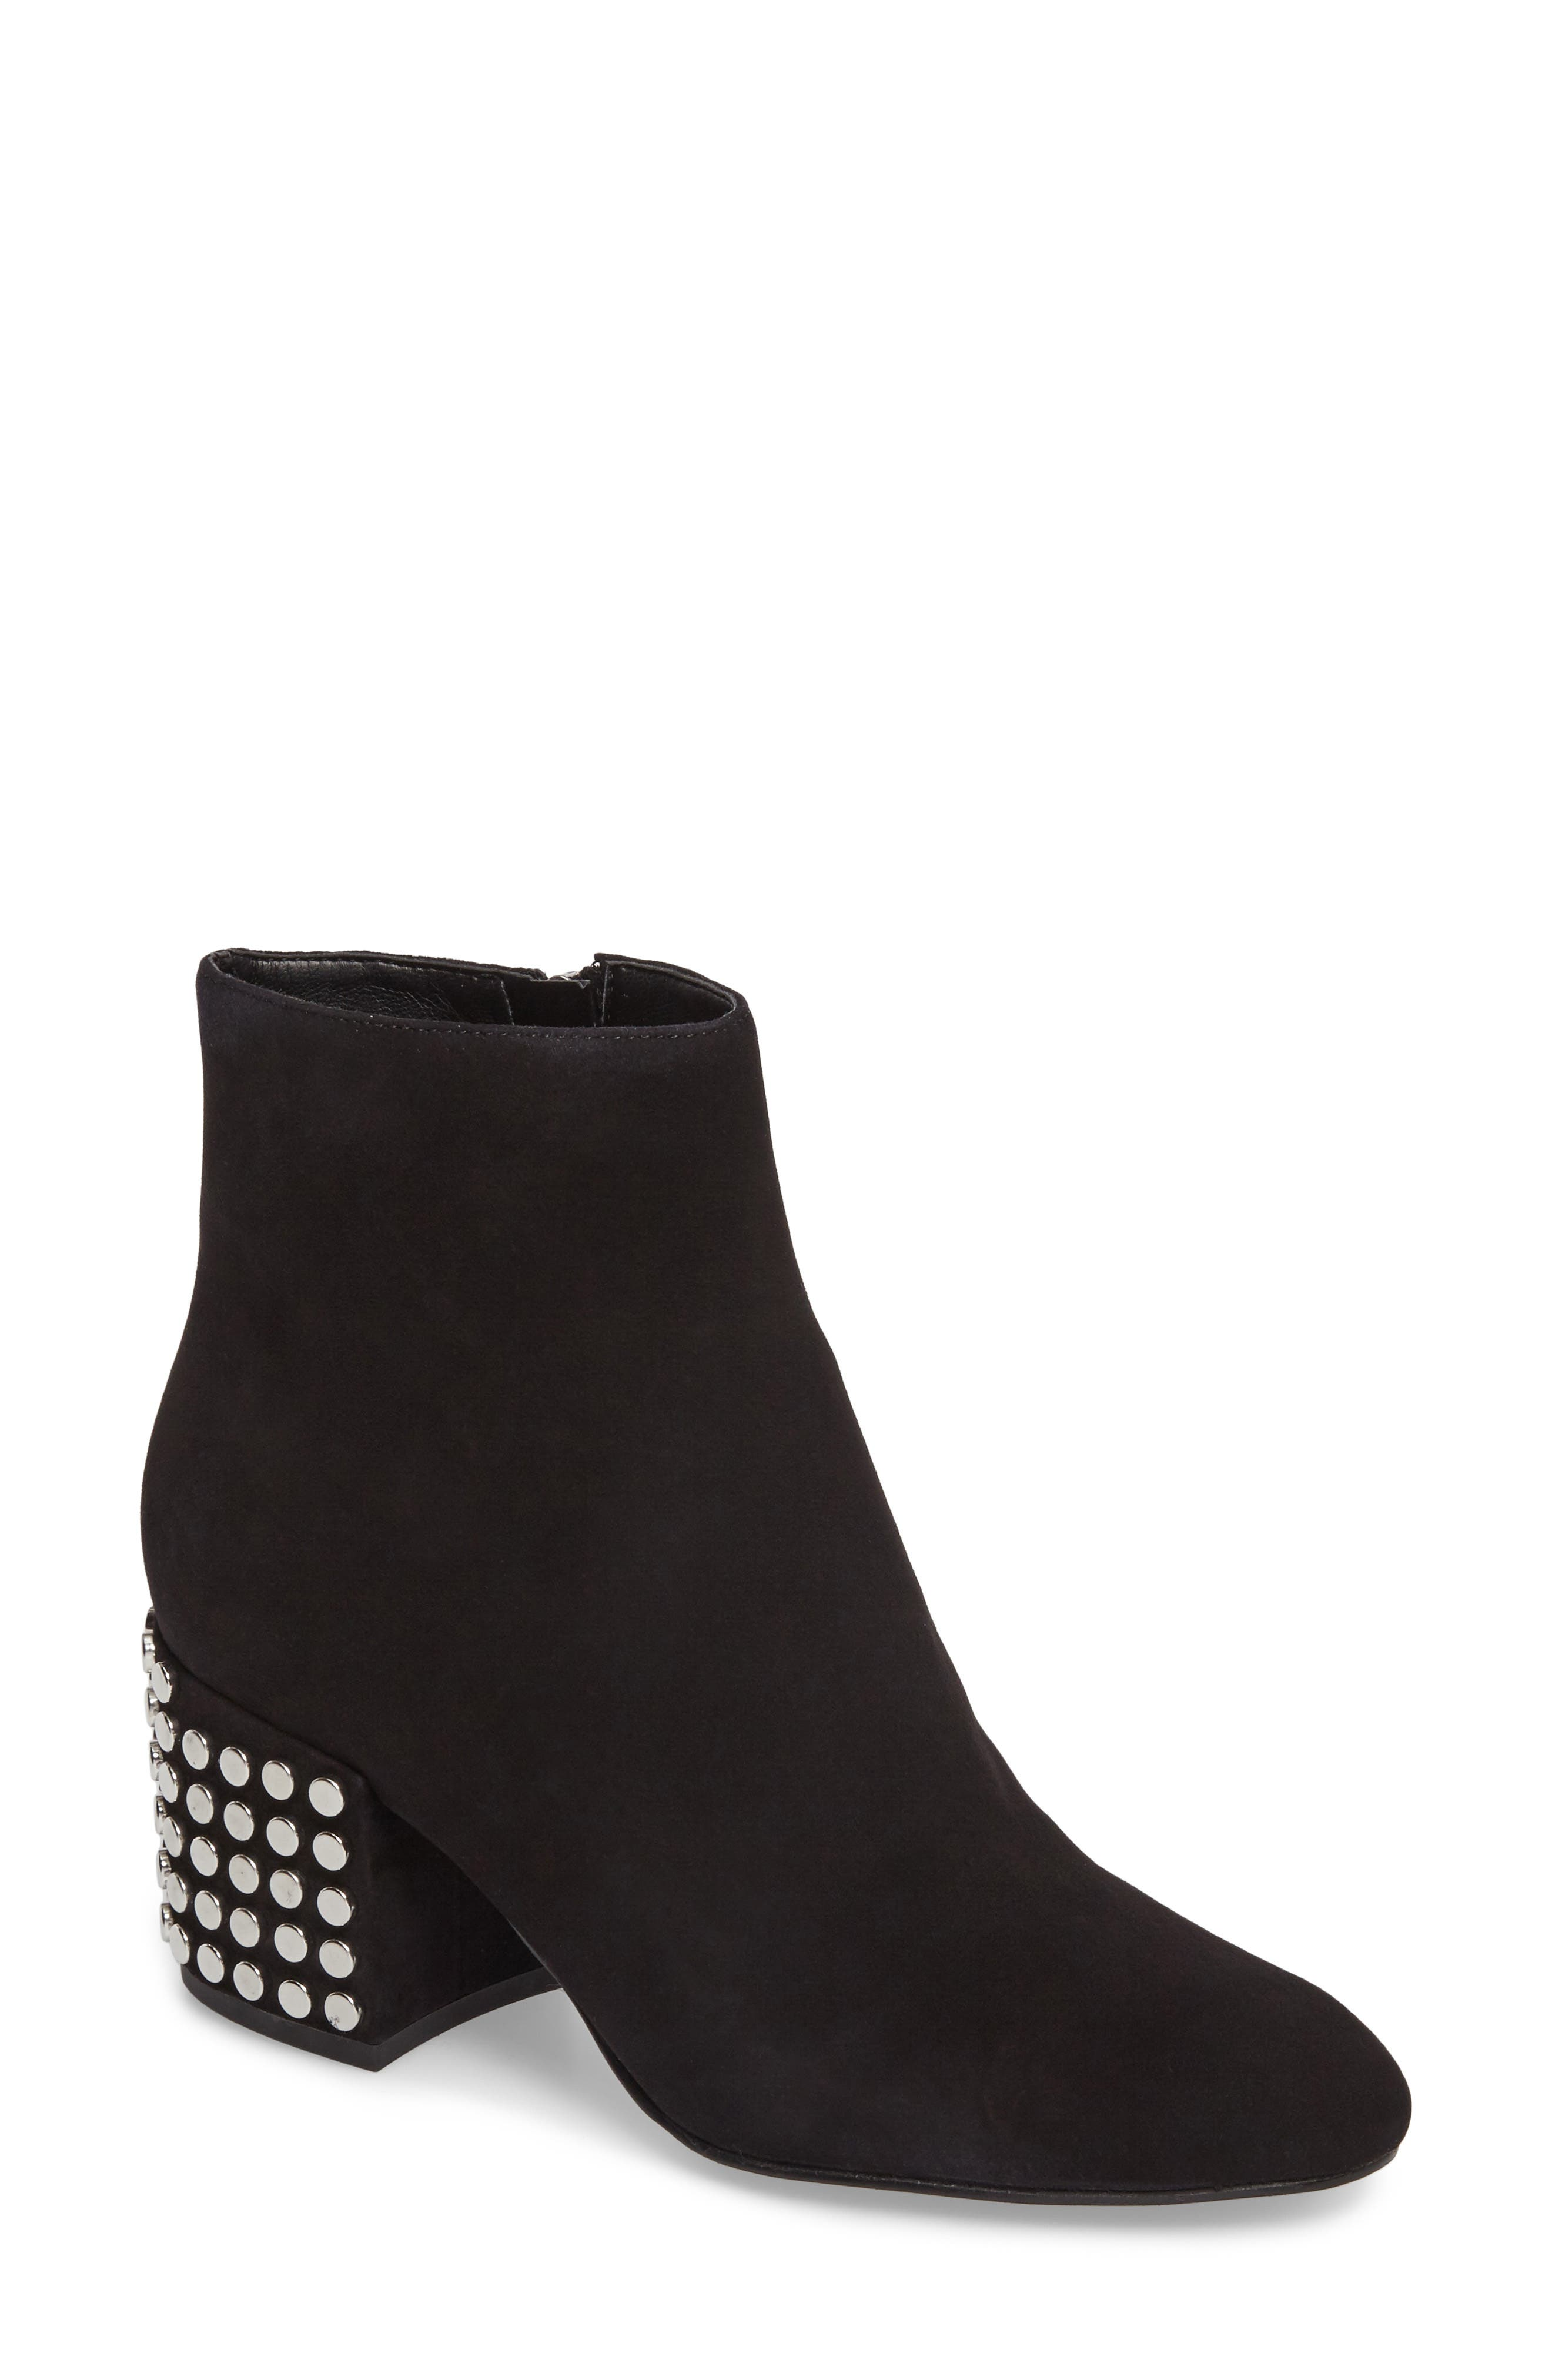 Blythe Studded Heel Bootie,                             Main thumbnail 1, color,                             Black Suede